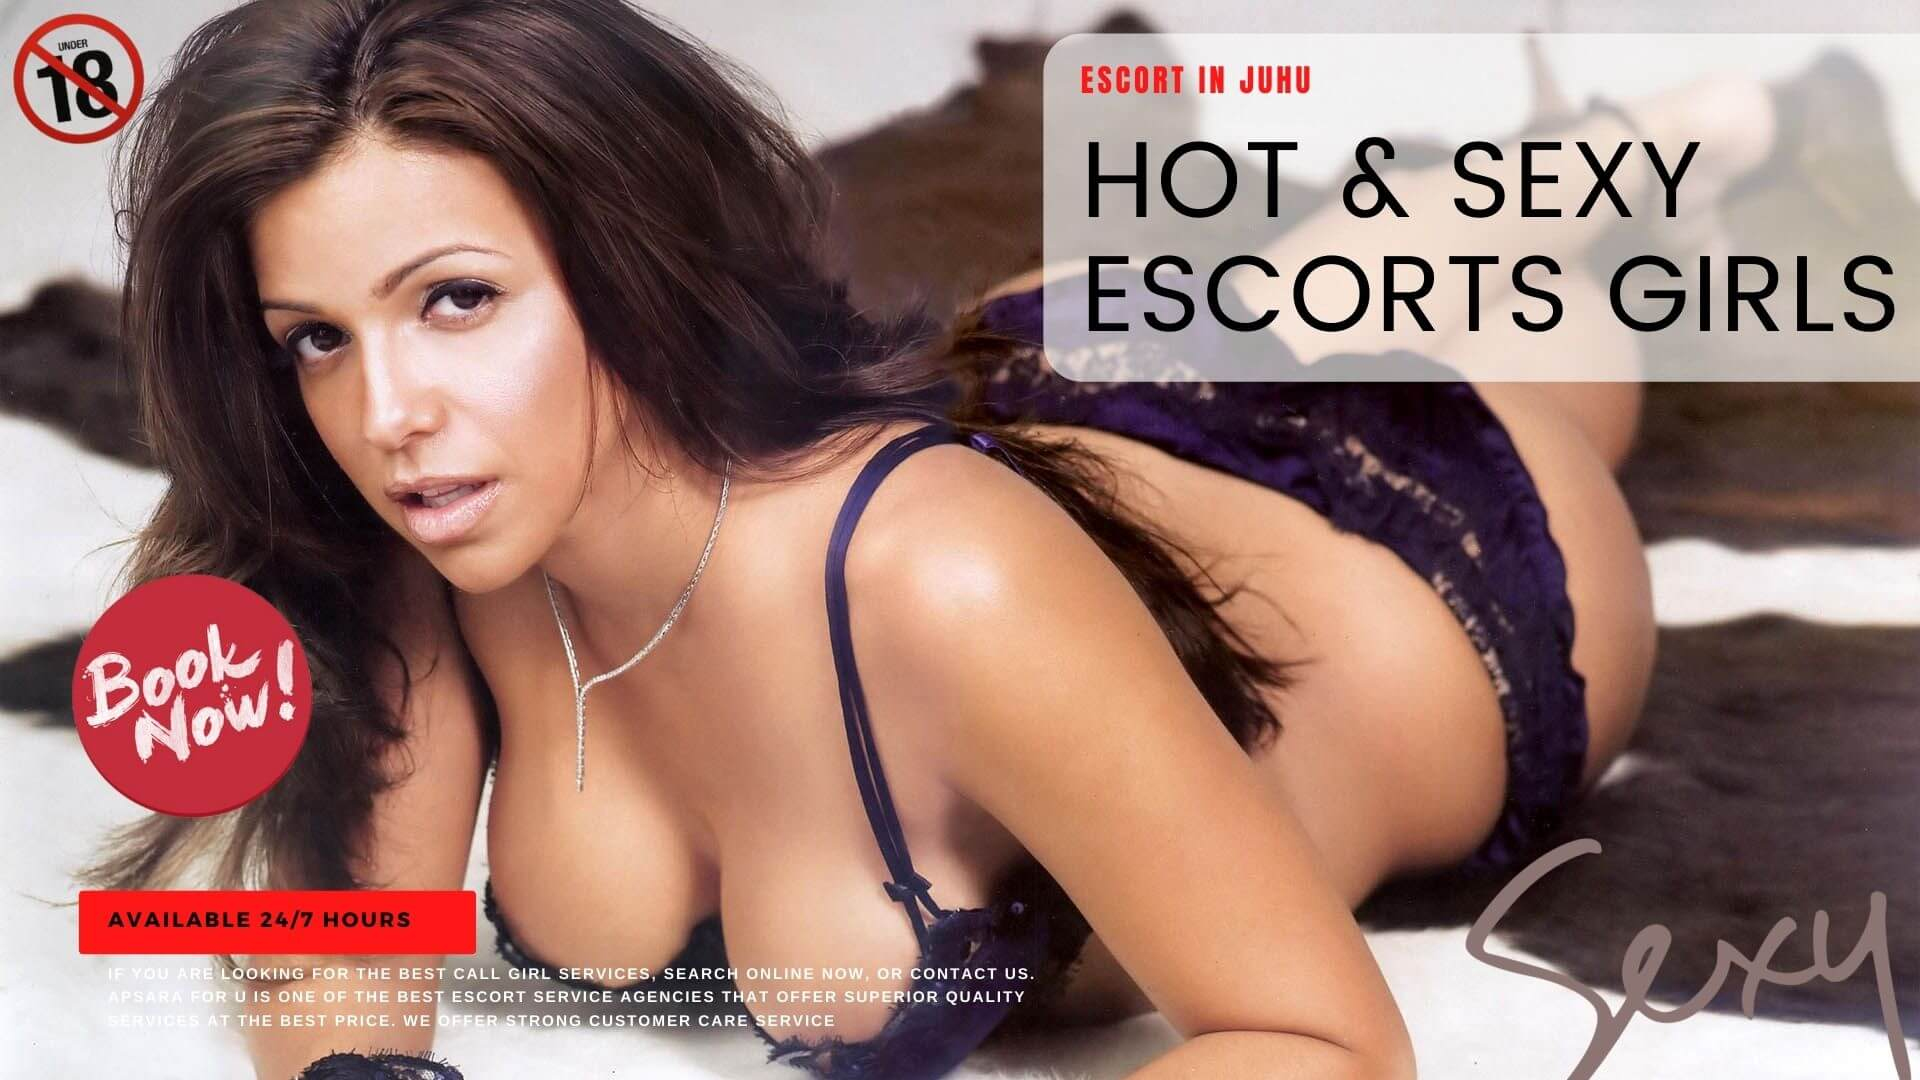 How To Find An Escort In Juhu?